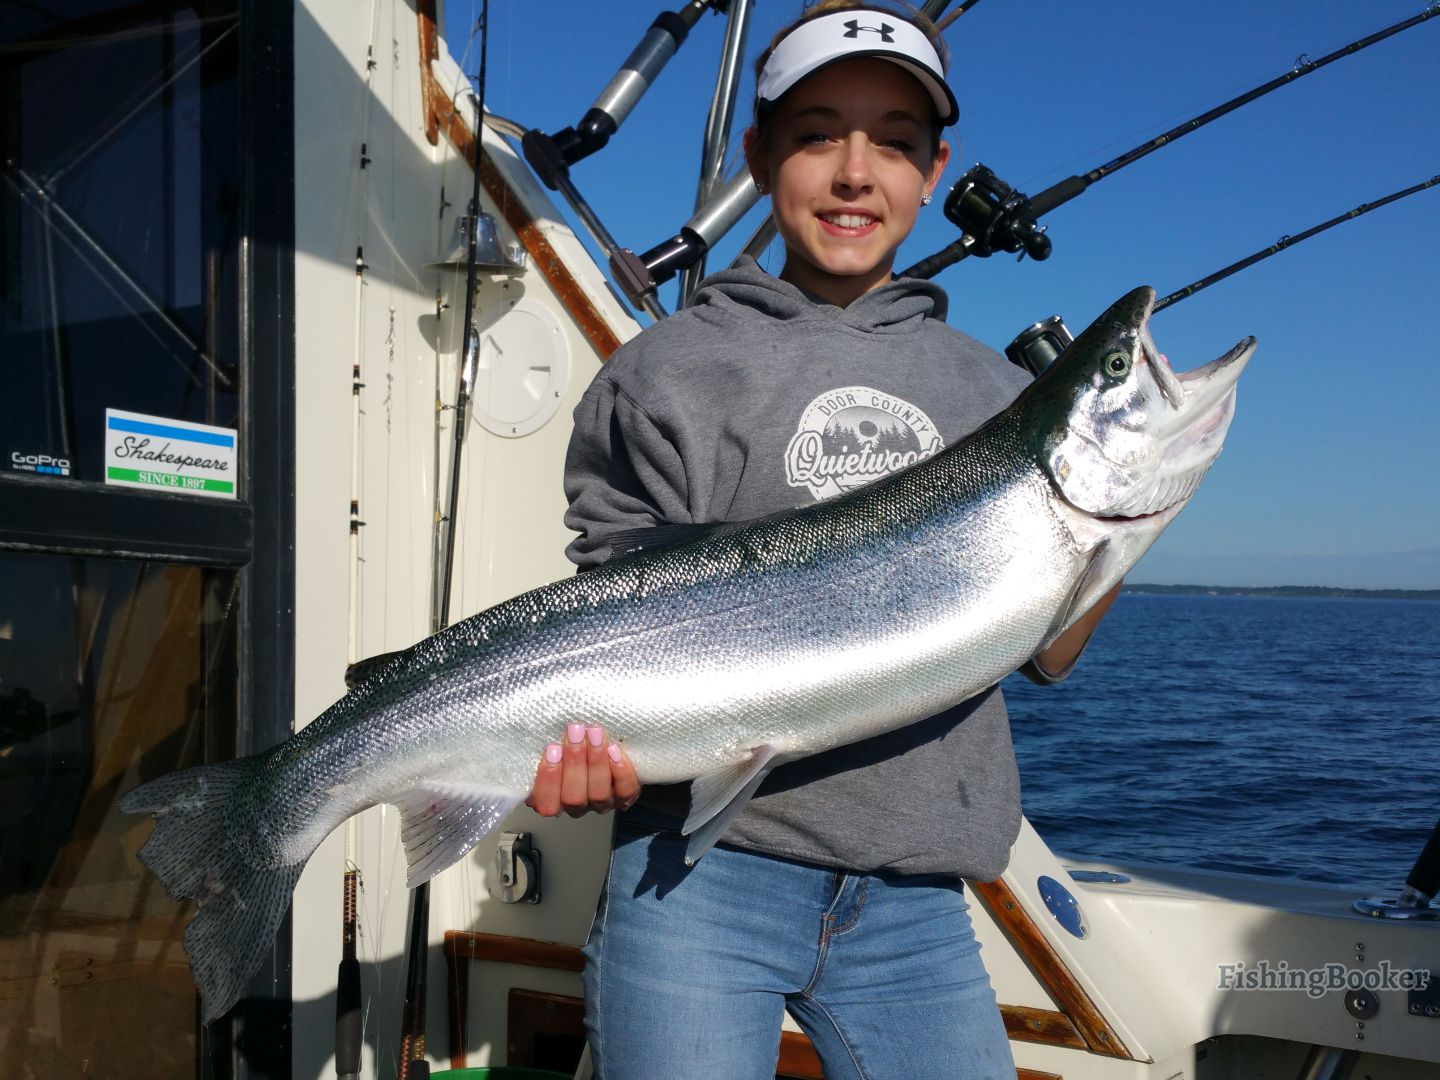 Rv charters lake michigan sportfish algoma wisconsin for Algoma fishing charters